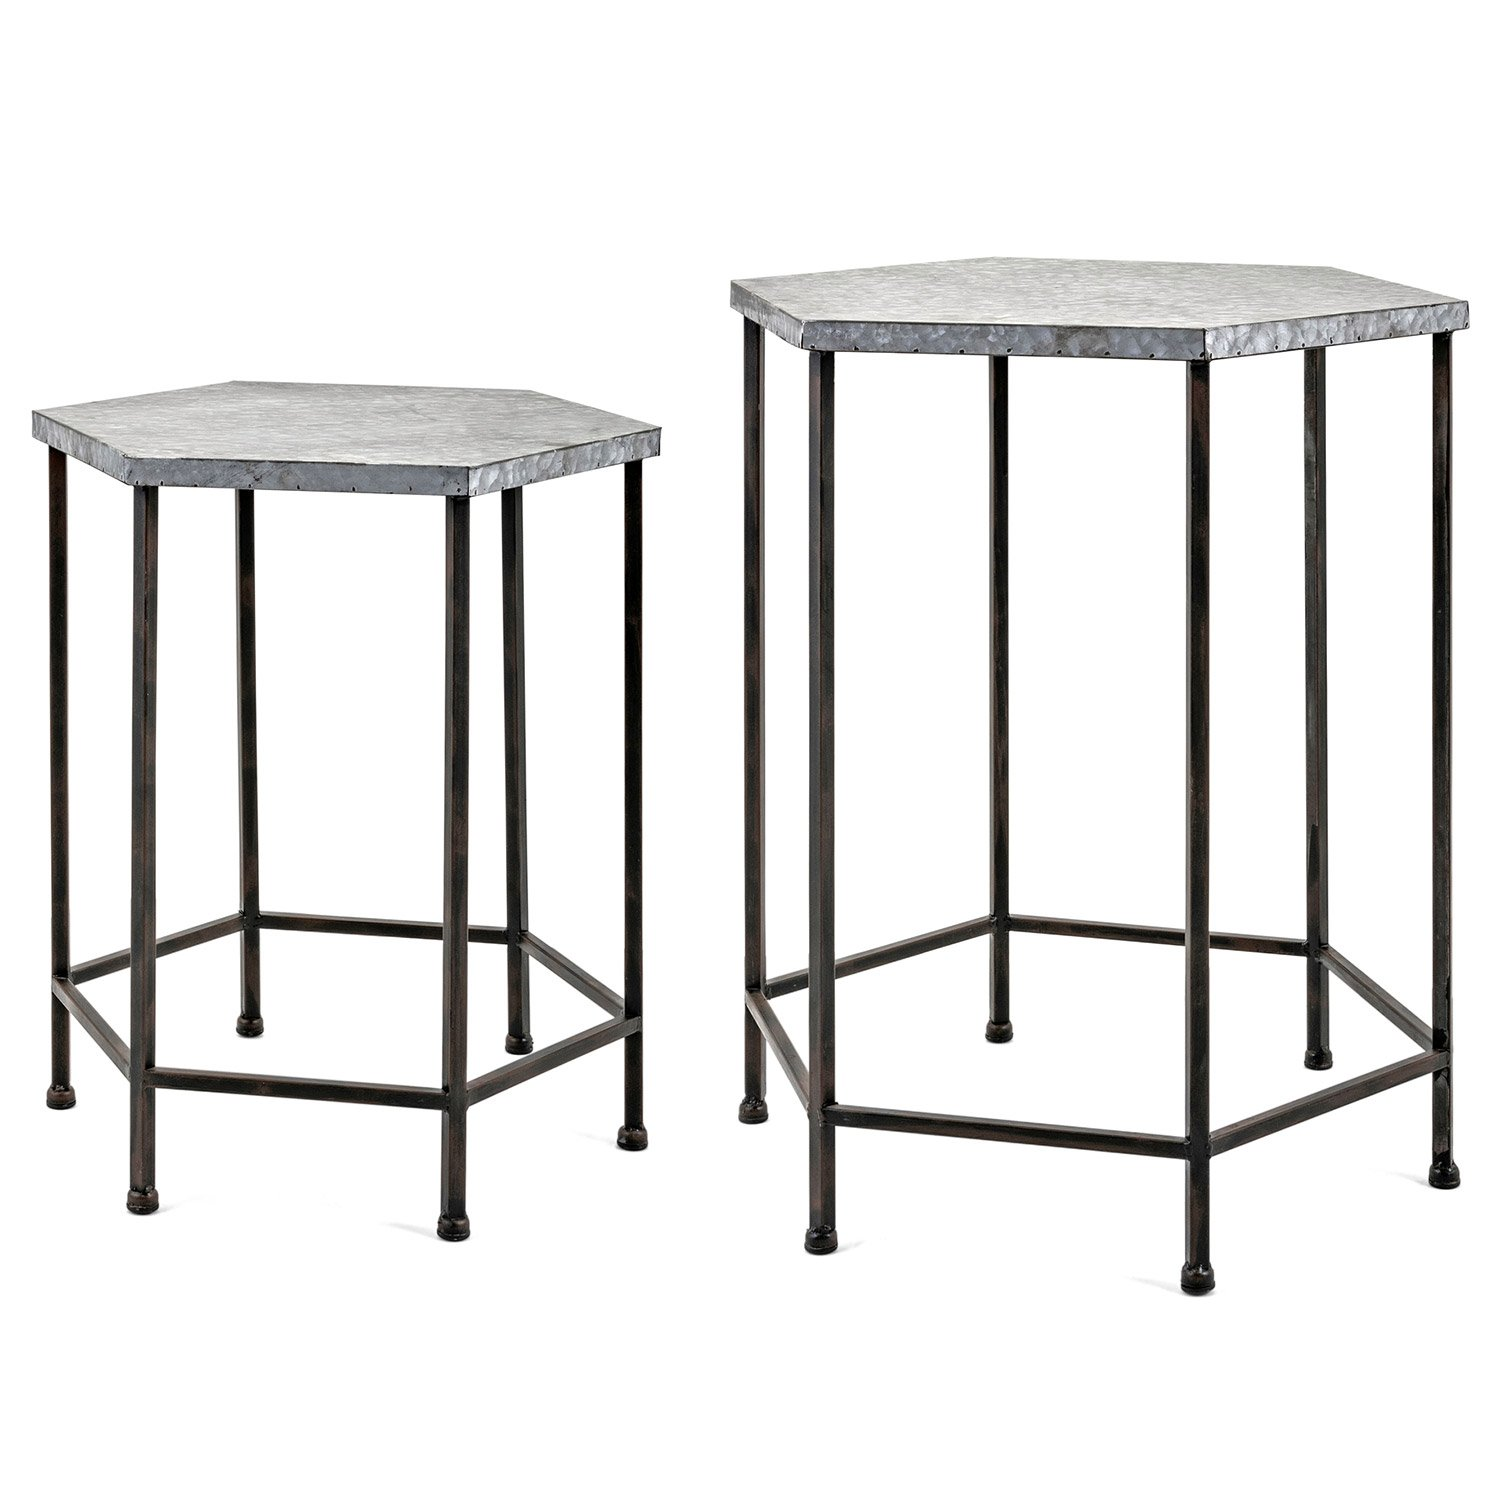 galvanized accent table set paynes gray metal narrow shelf behind couch mirrored round antique black coffee iron patio chairs green end cast aluminum modern outdoor nic hobby